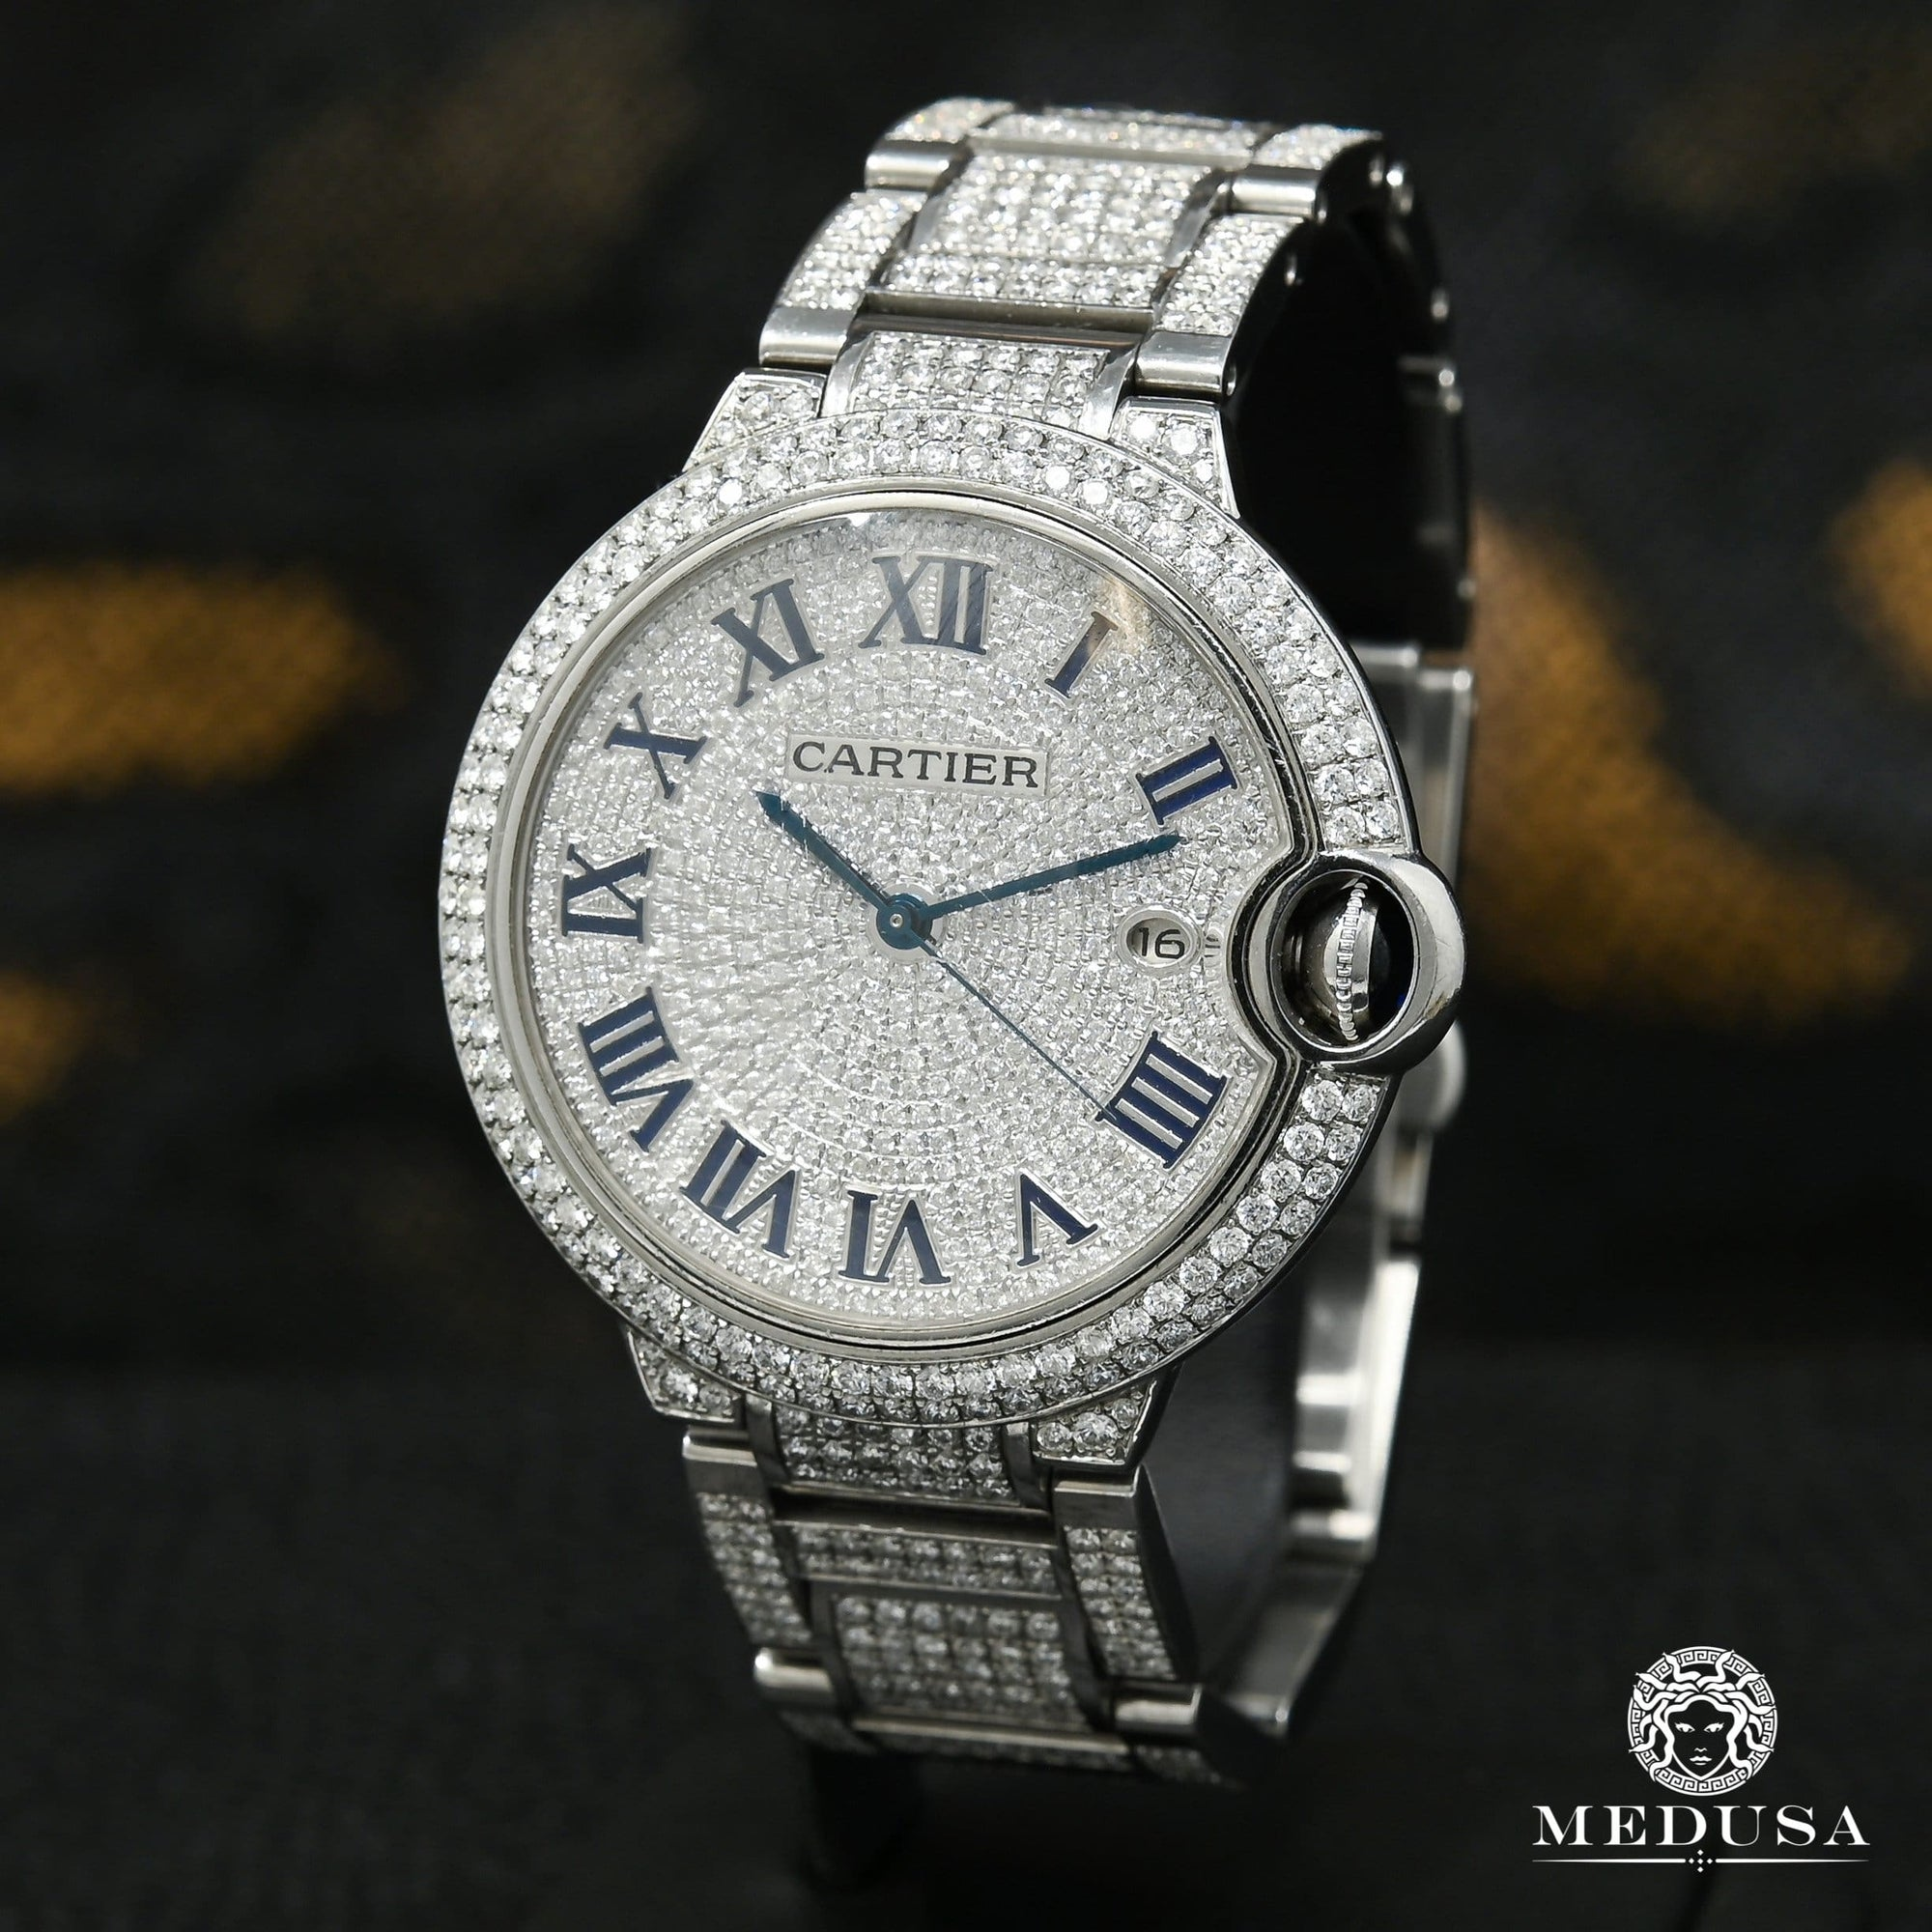 42mm Cartier Ballon Bleu - Iced